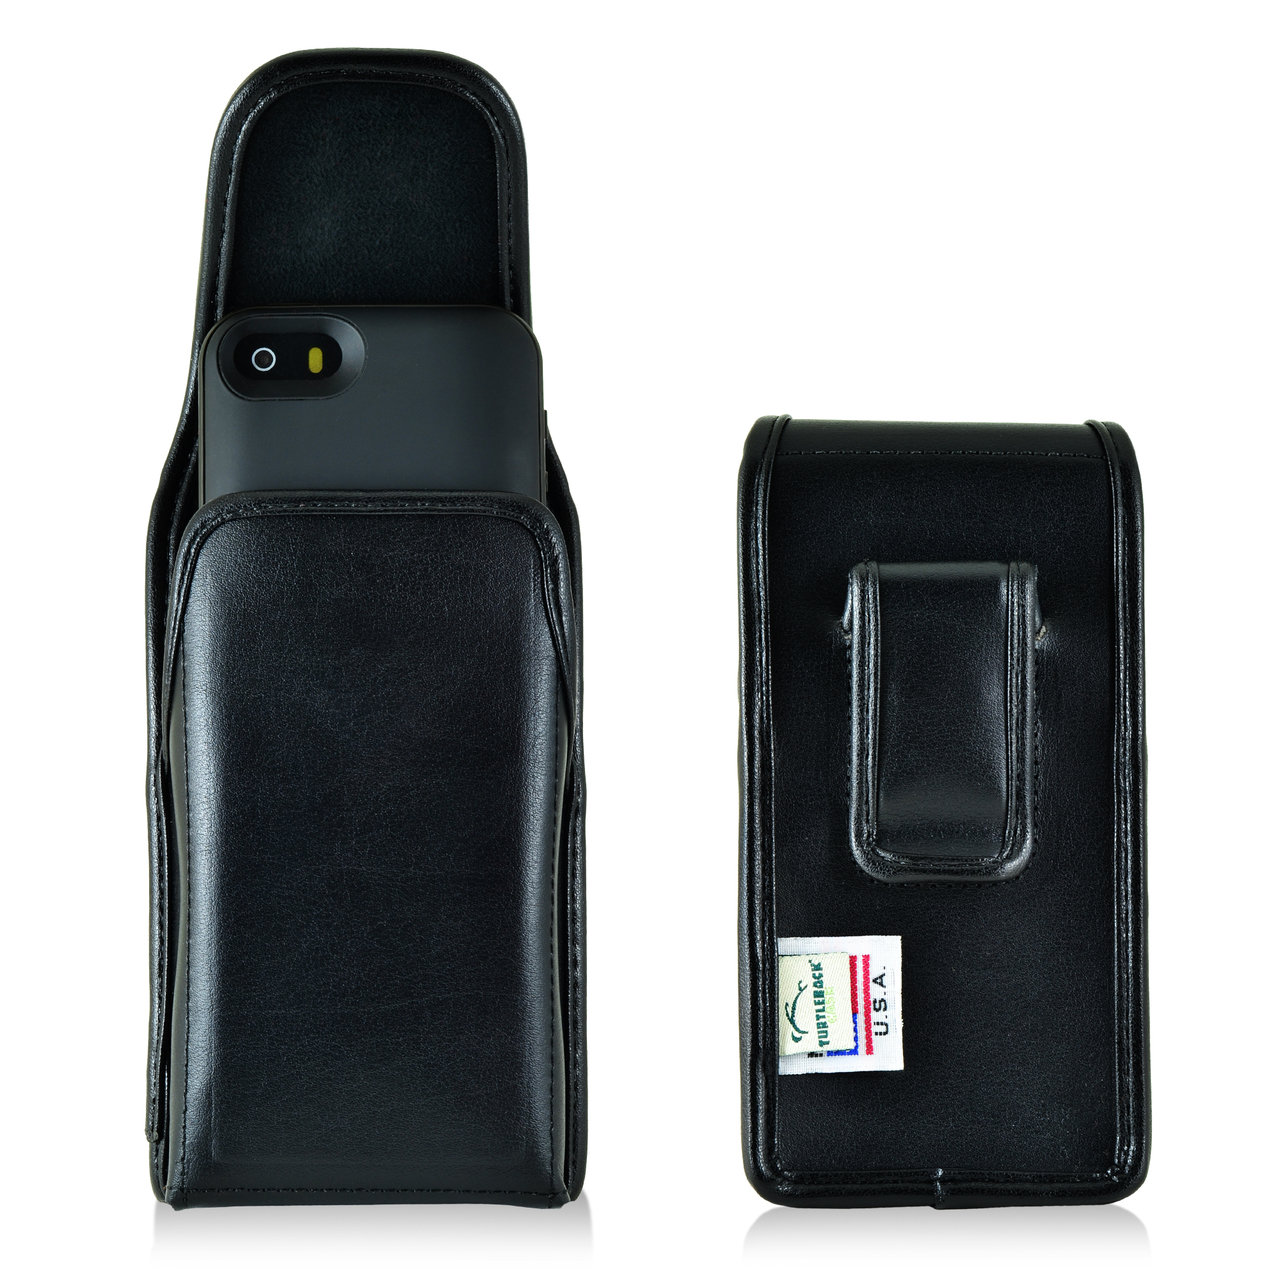 new styles 8dbc8 1e60f Mophie Juice Pack iPhone SE Holster Mophie Air, Plus, Helium iPhone 5s Belt  Clip Case, Executive Belt Clip, Vertical Black Leather Pouch - Magnetic ...